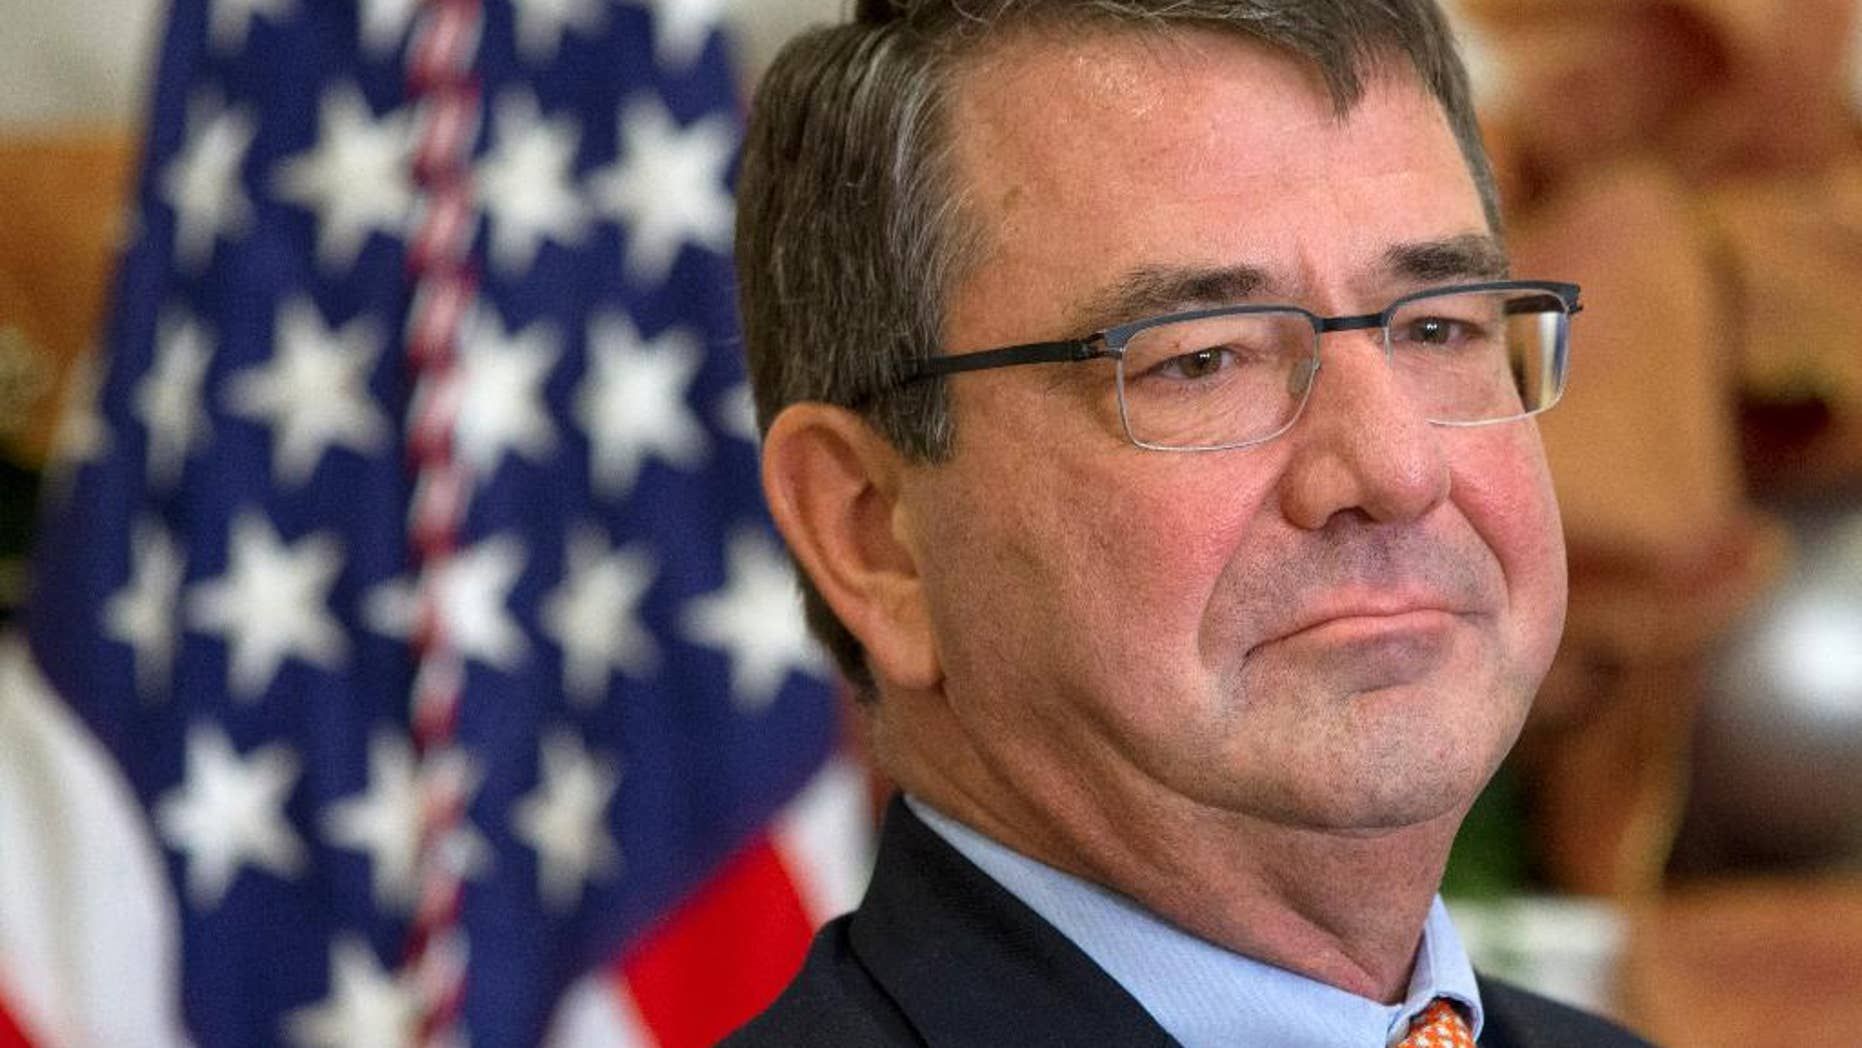 FILE - In this Dec. 5, 2014 file photo, Ashton Carter listens as President Barack Obama announces Carter as his nominee for defense secretary, in the Roosevelt Room of the White House in Washington. The Senate Armed Services Committee is holding a confirmation hearing next week to consider Ashton Carter to be the next secretary of defense. President Barack Obama nominated Carter to succeed Chuck Hagel, who resigned under pressure from Obama.(AP Photo/Jacquelyn Martin, File)